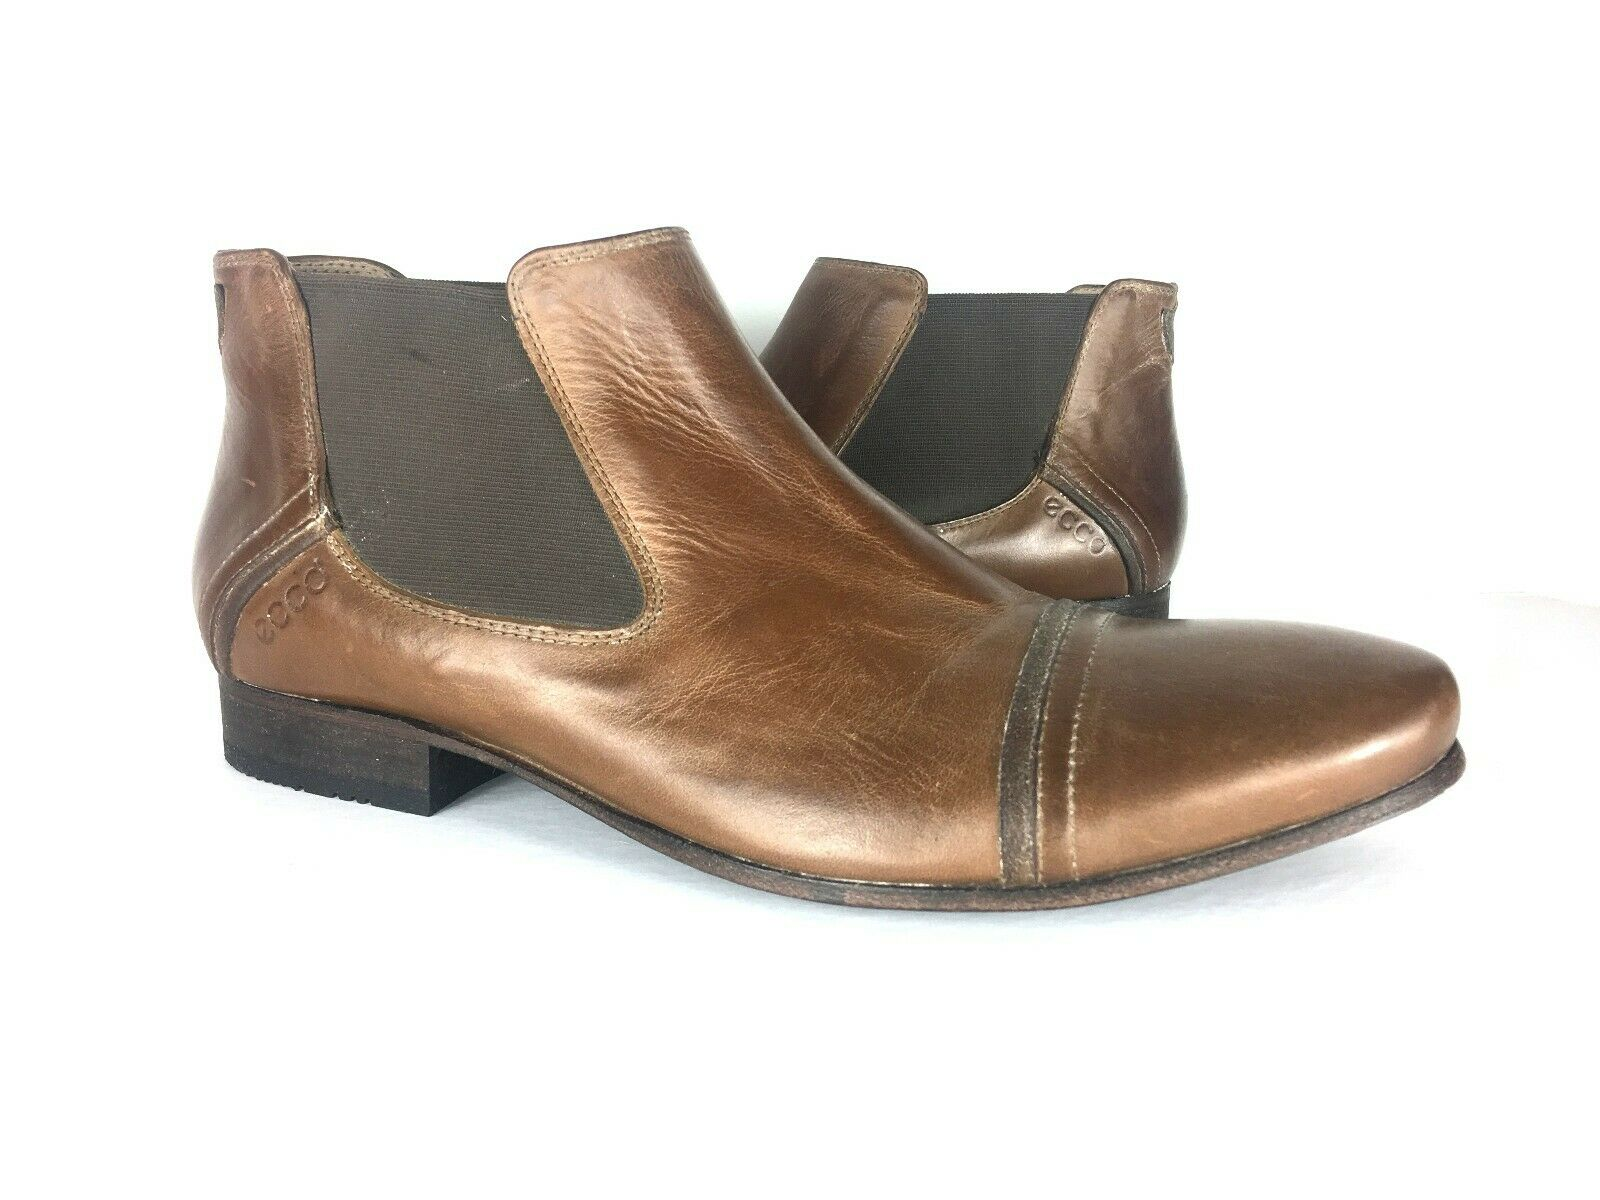 Ecco Men's Brown Leather Chelsea Ankle Motto Boots Sz 41 or US8